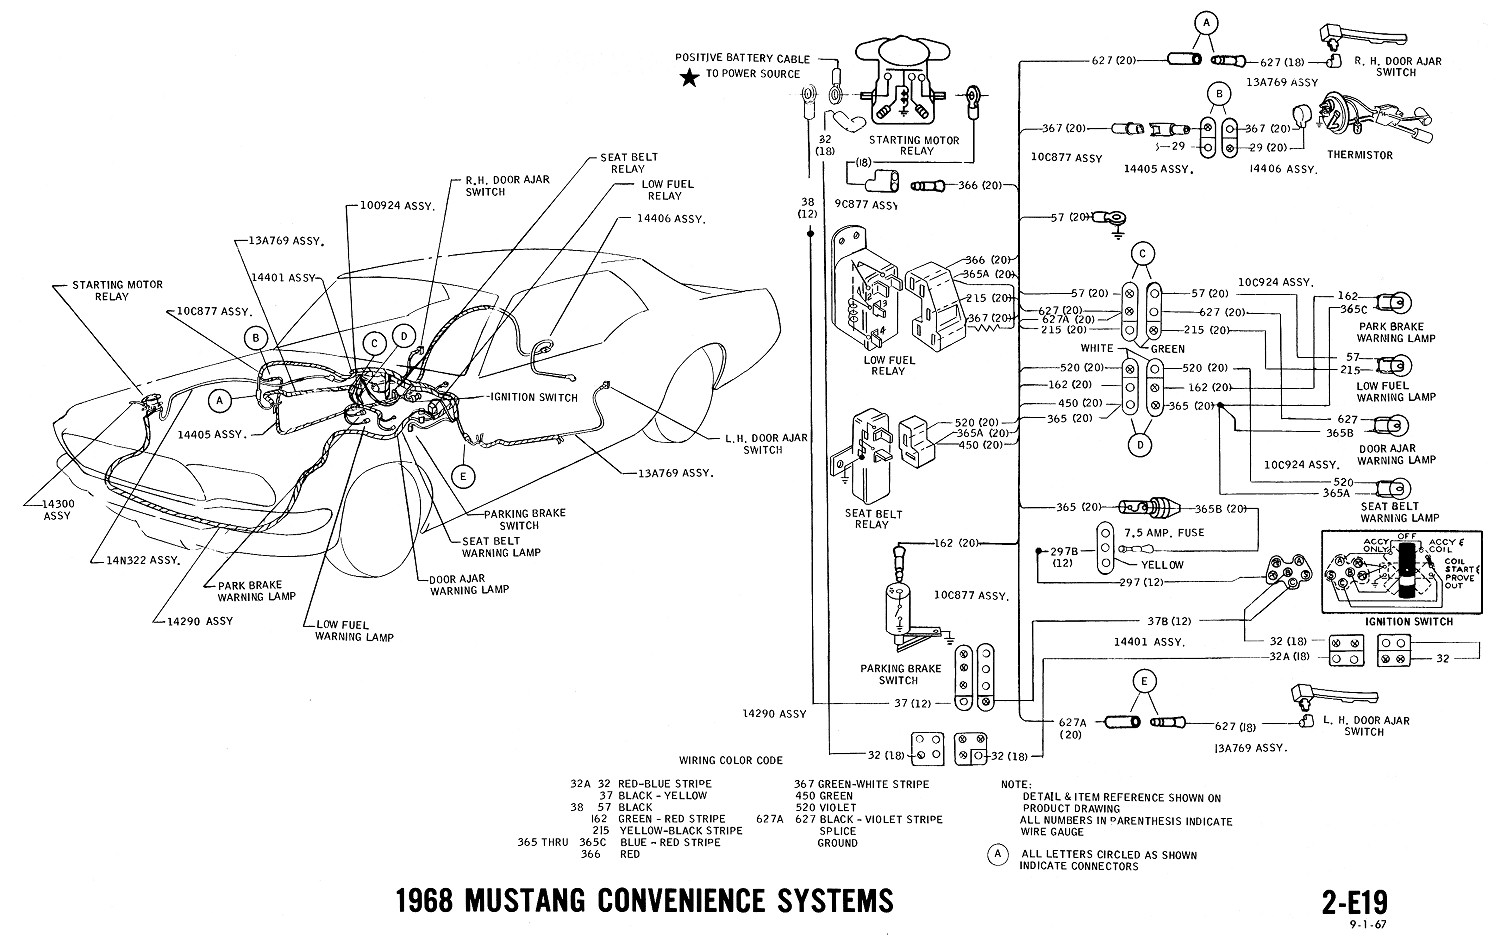 E19 1968 mustang wiring diagrams evolving software Multi Speed Blower Motor Wiring at panicattacktreatment.co